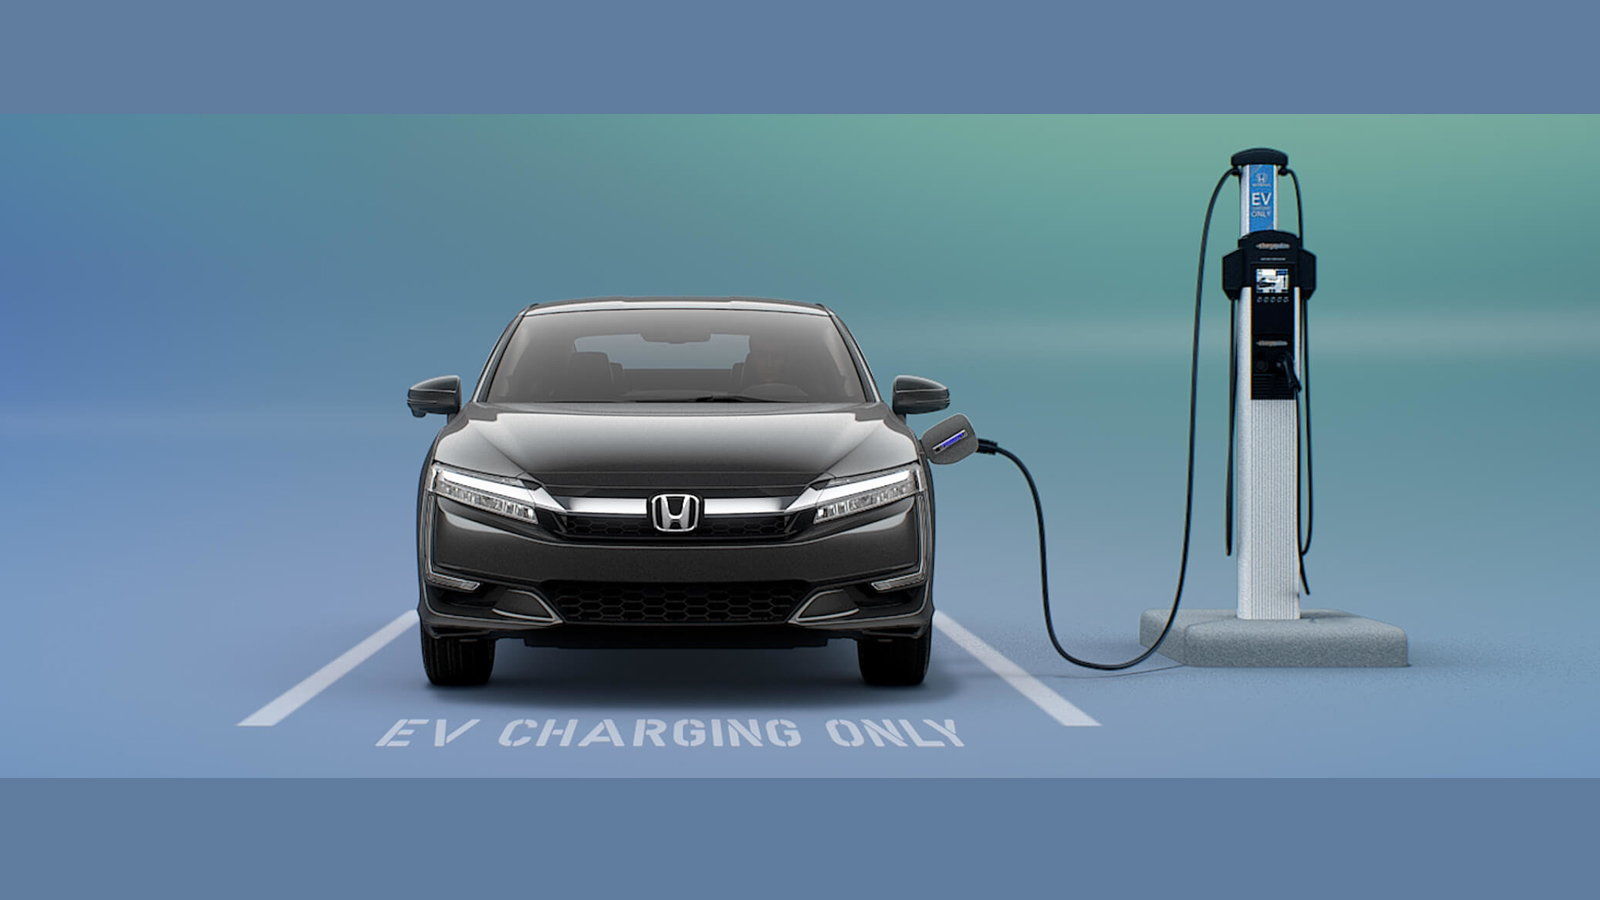 EVs Provide a Catch 22 for the Auto Industry